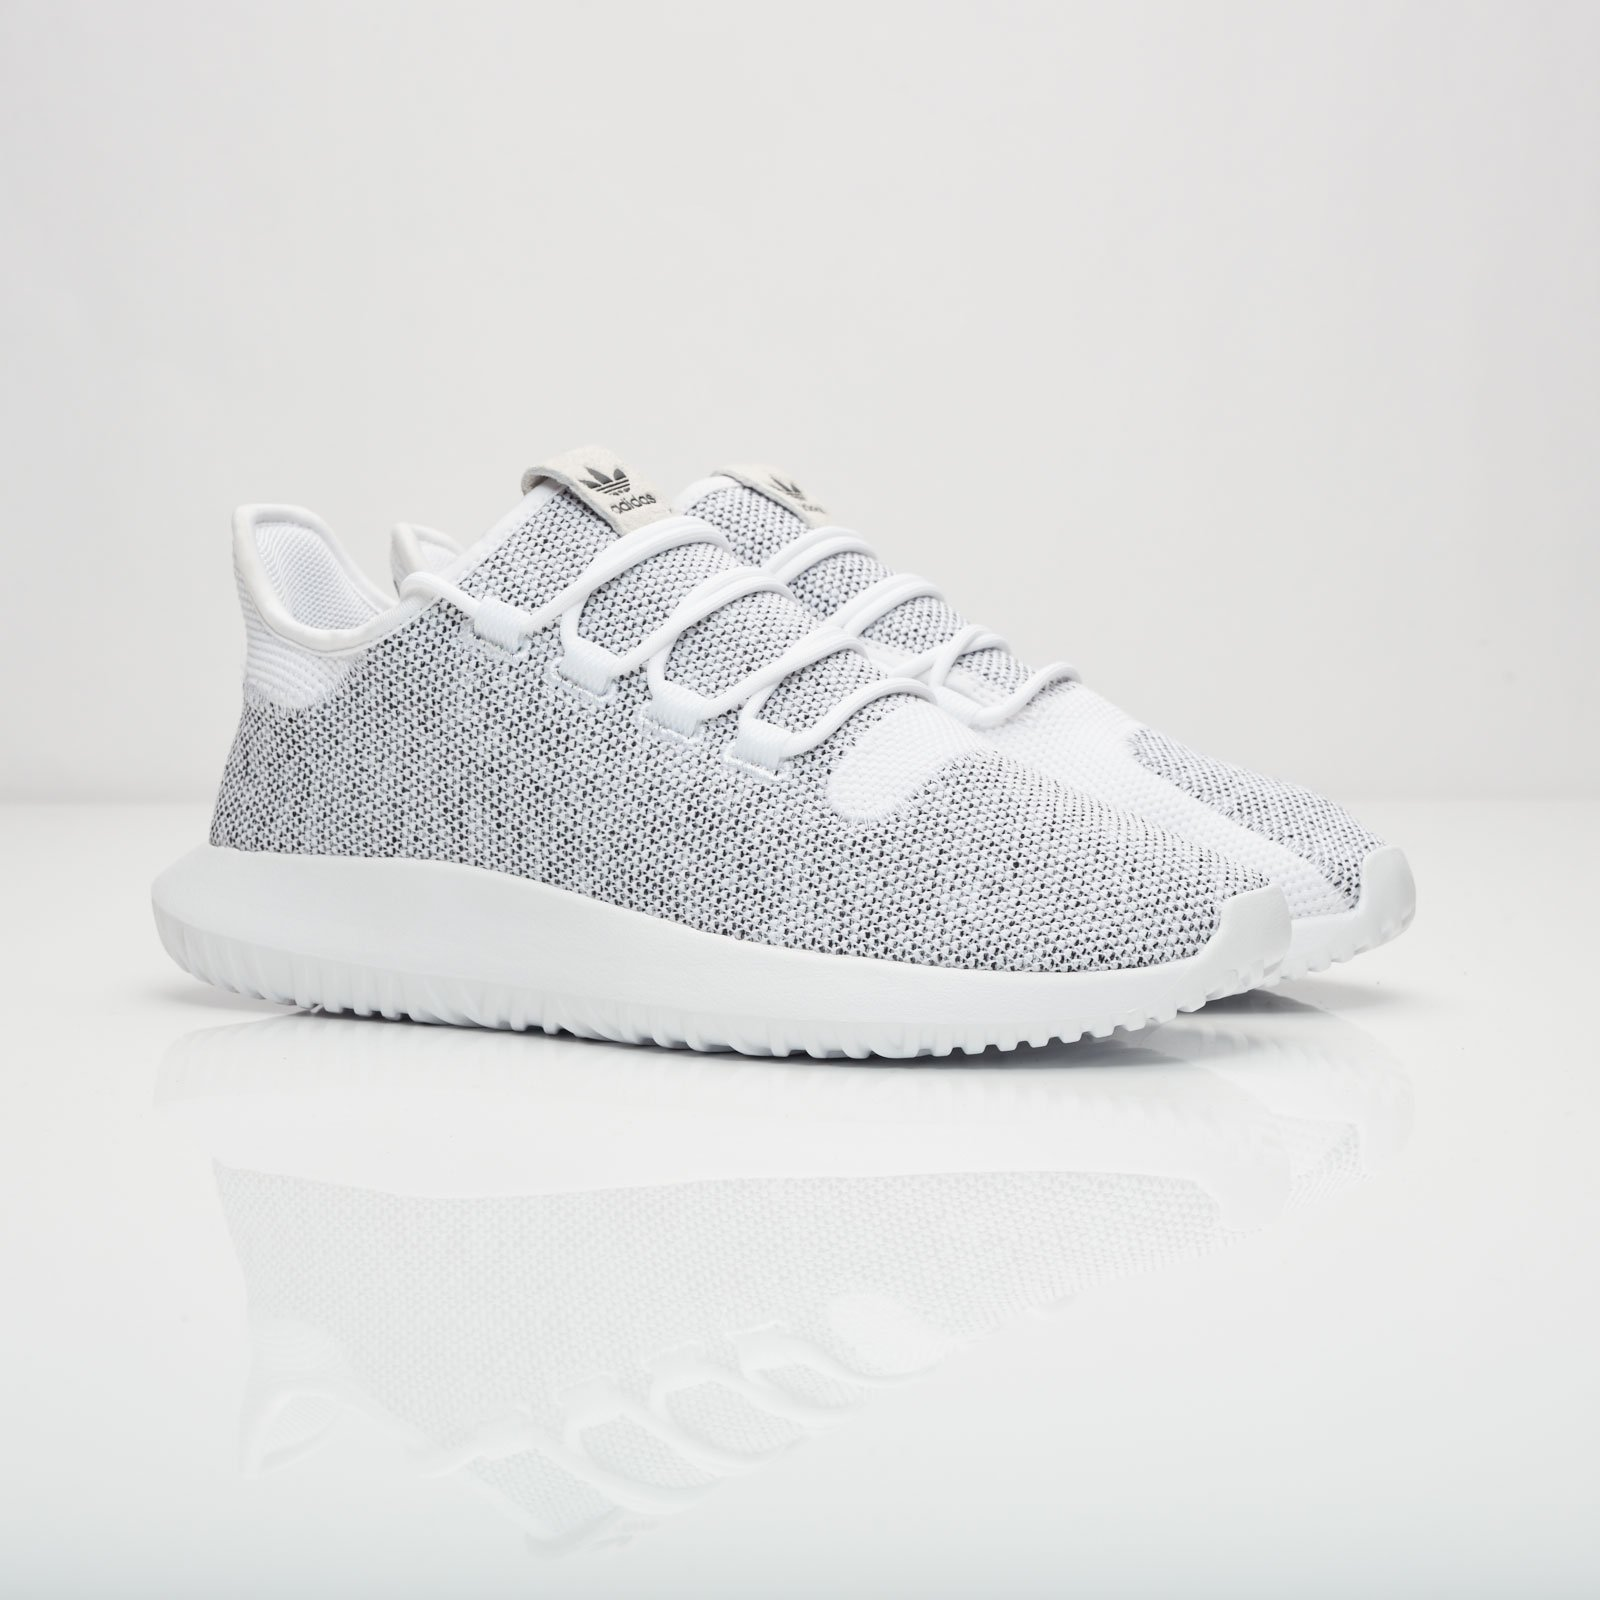 check out 5cdd8 ad808 adidas Tubular Shadow Knit - Bb8941 - Sneakersnstuff ...